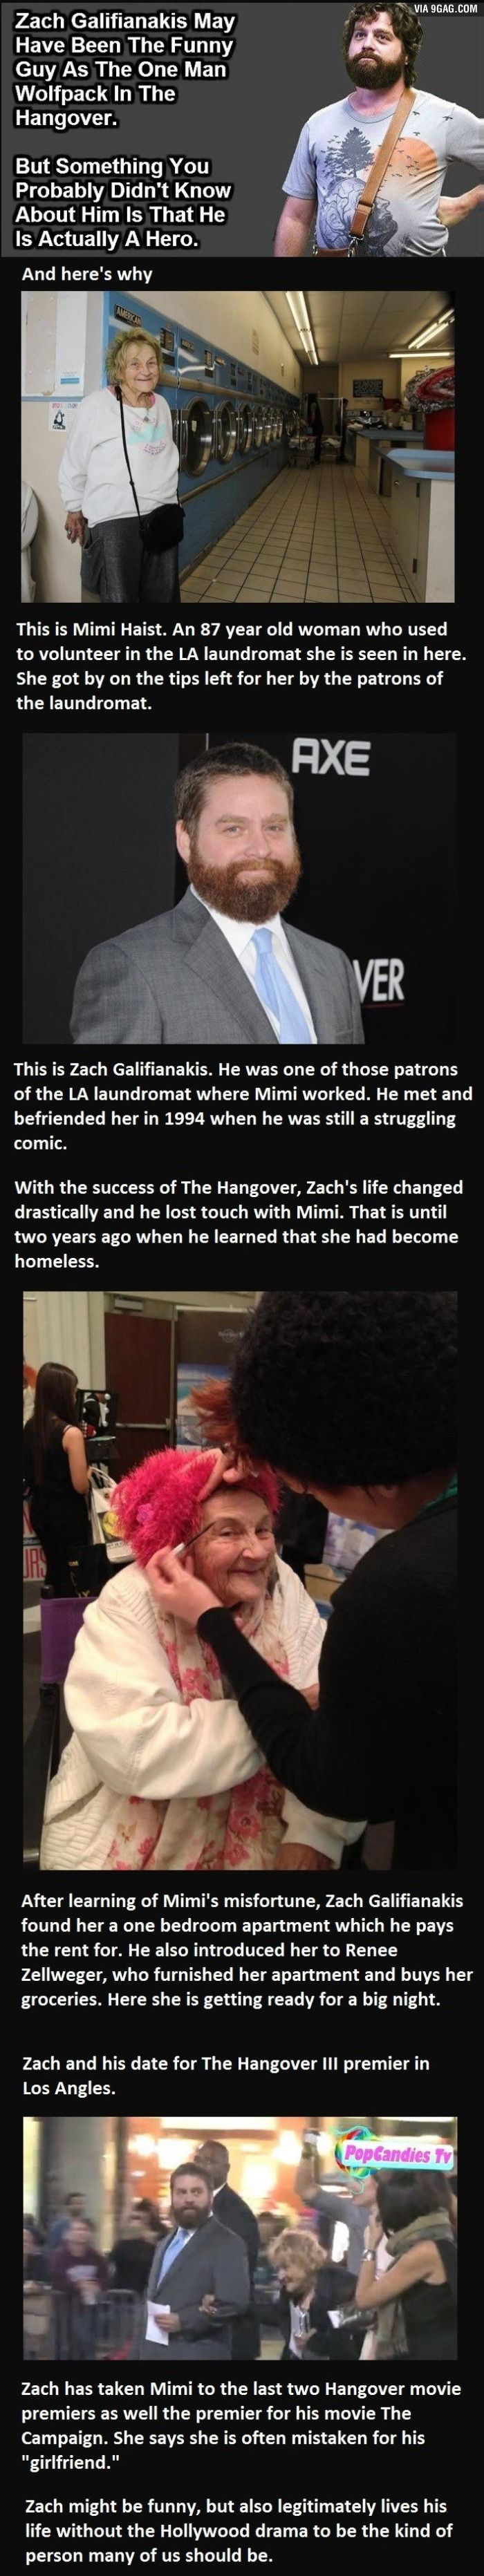 Zach Galifianakis Might Have Been The Funny Guy, But This Is Amazing.